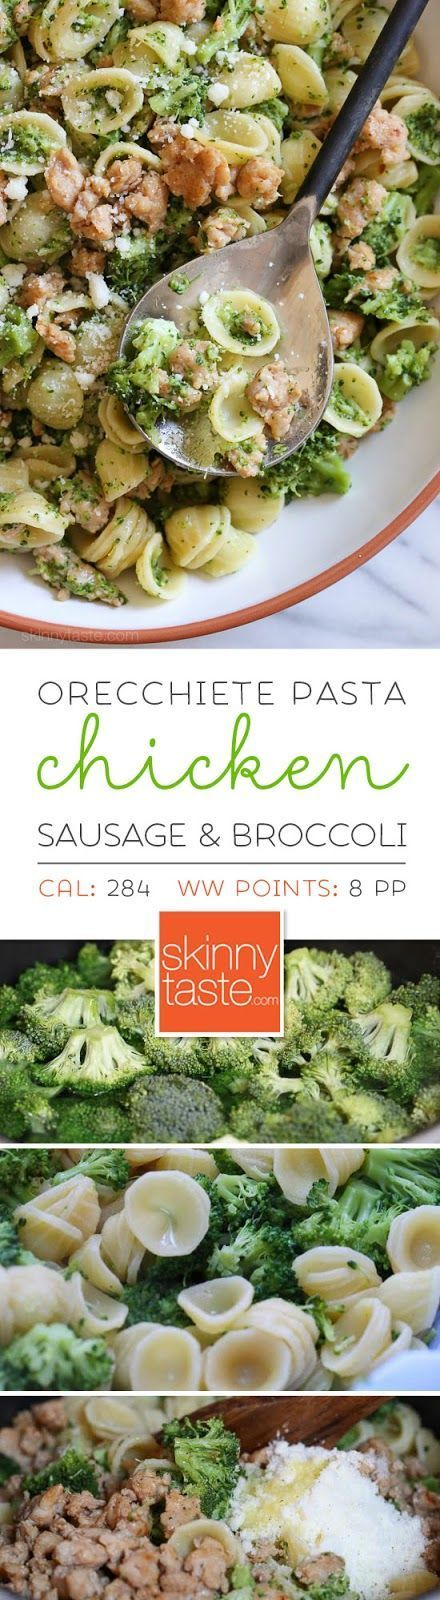 Orecchiette Pasta with Chicken Sausage and Broccoli-- don't overcook pasta-- package says 14 minutes, do 8-10